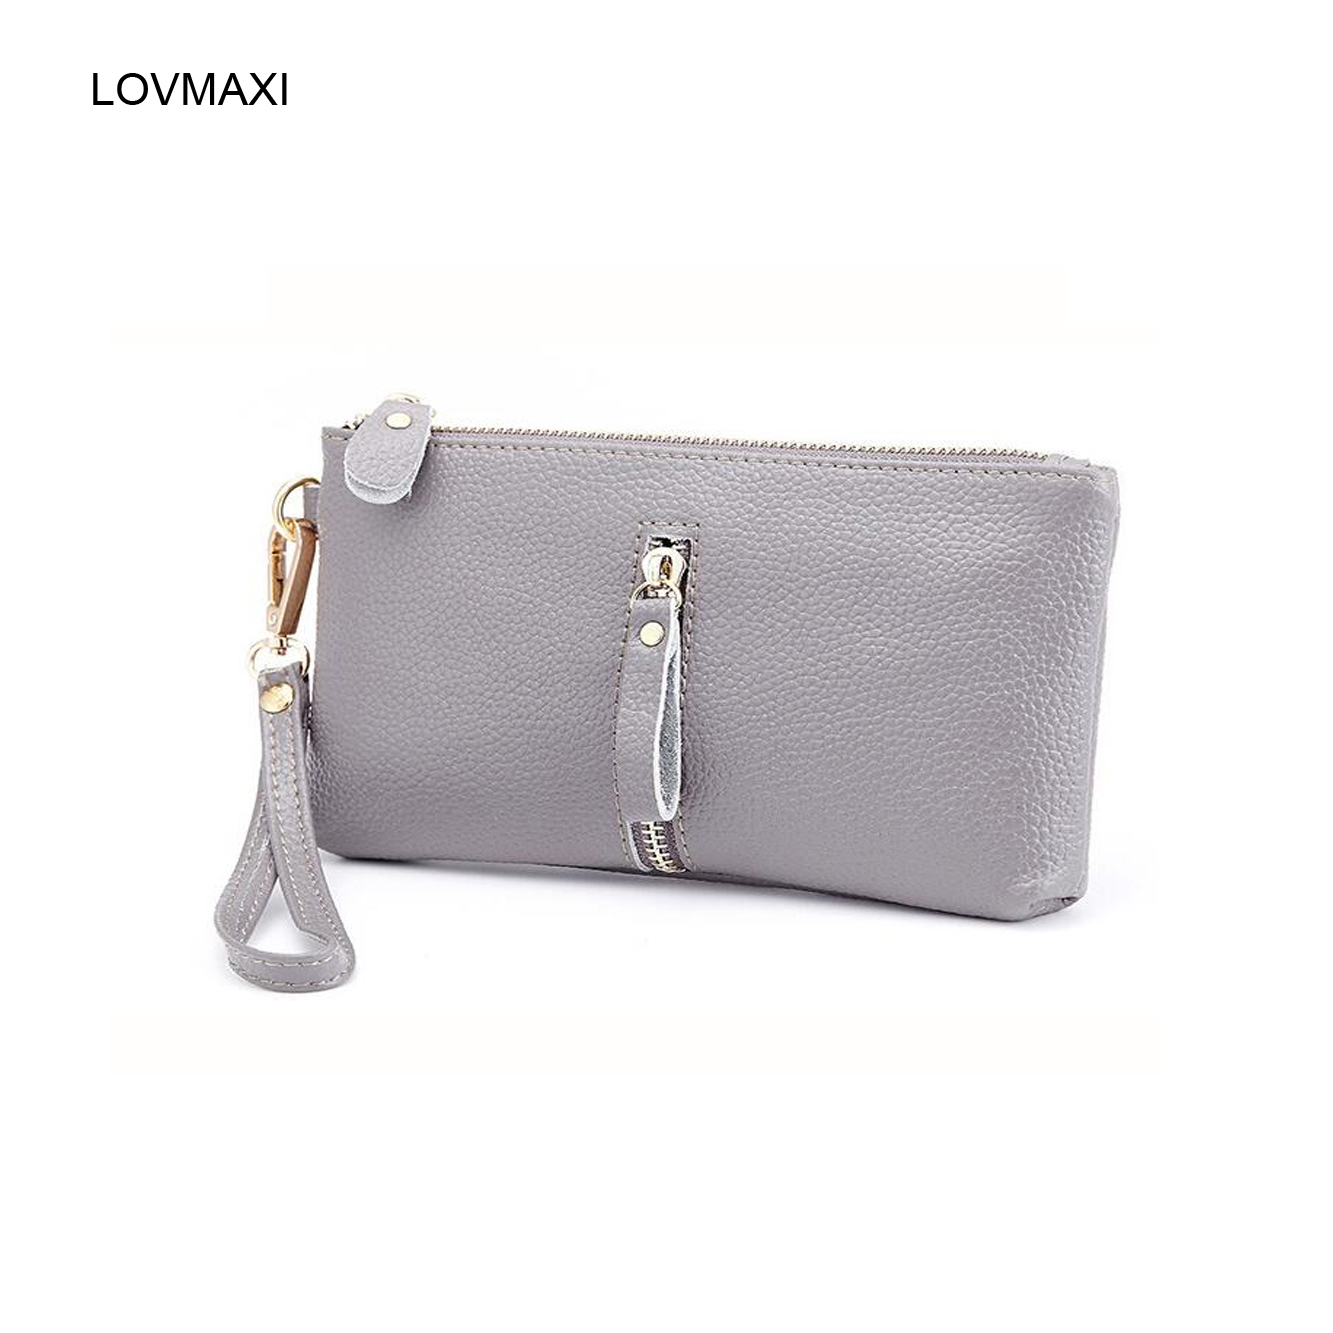 Fashion women wallets genuine leather purses causal coin purse clutches<br><br>Aliexpress